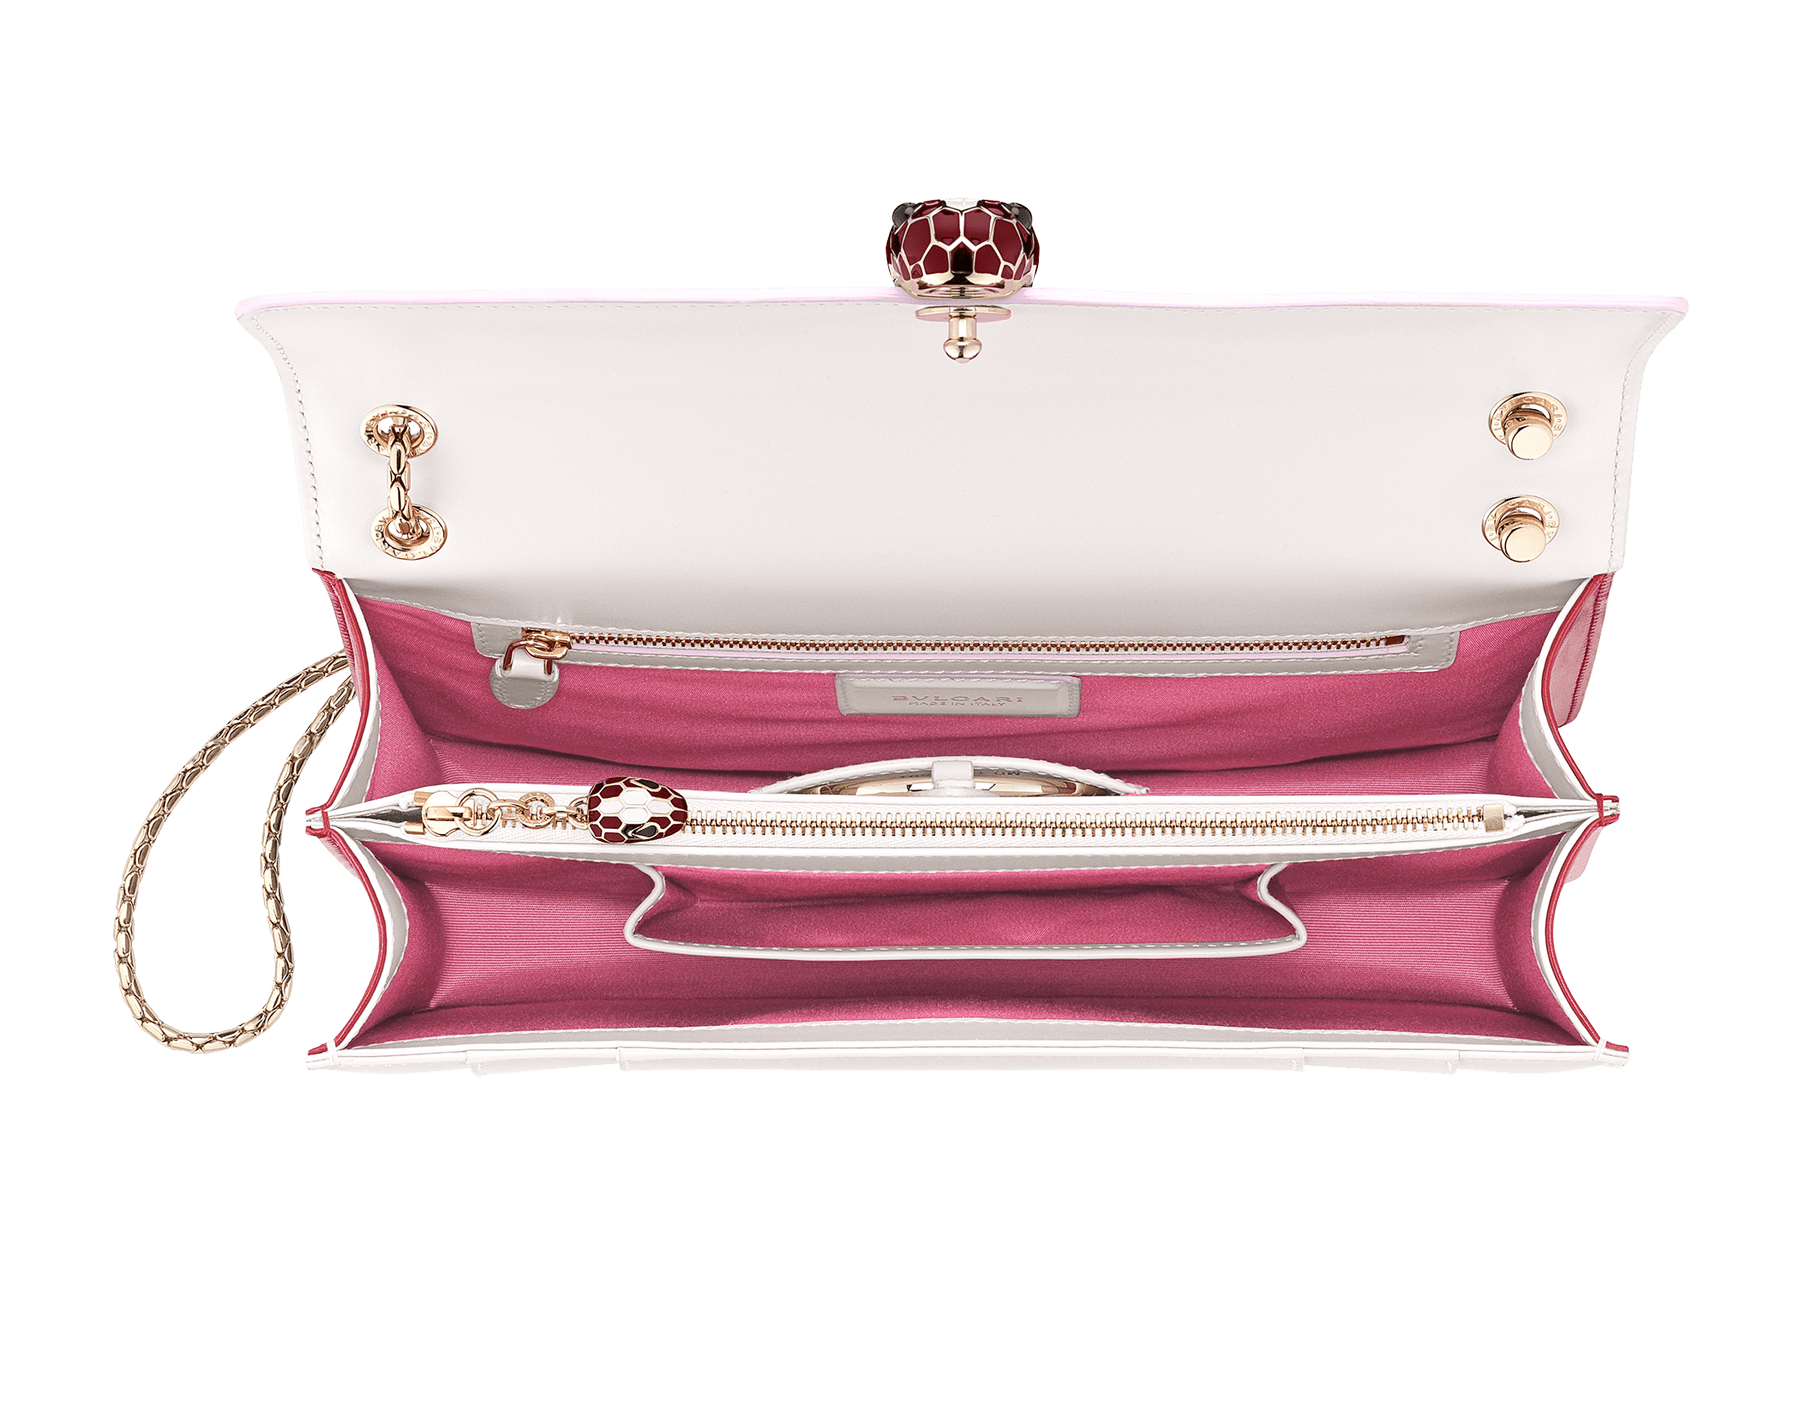 Serpenti Forever crossbody bag in Roman garnet calf leather, with rosa di francia calf leather sides. Iconic snakehead closure in light gold plated brass embellished with rosa di francia and black enamel and black onyx eyes. 521-BCL image 4